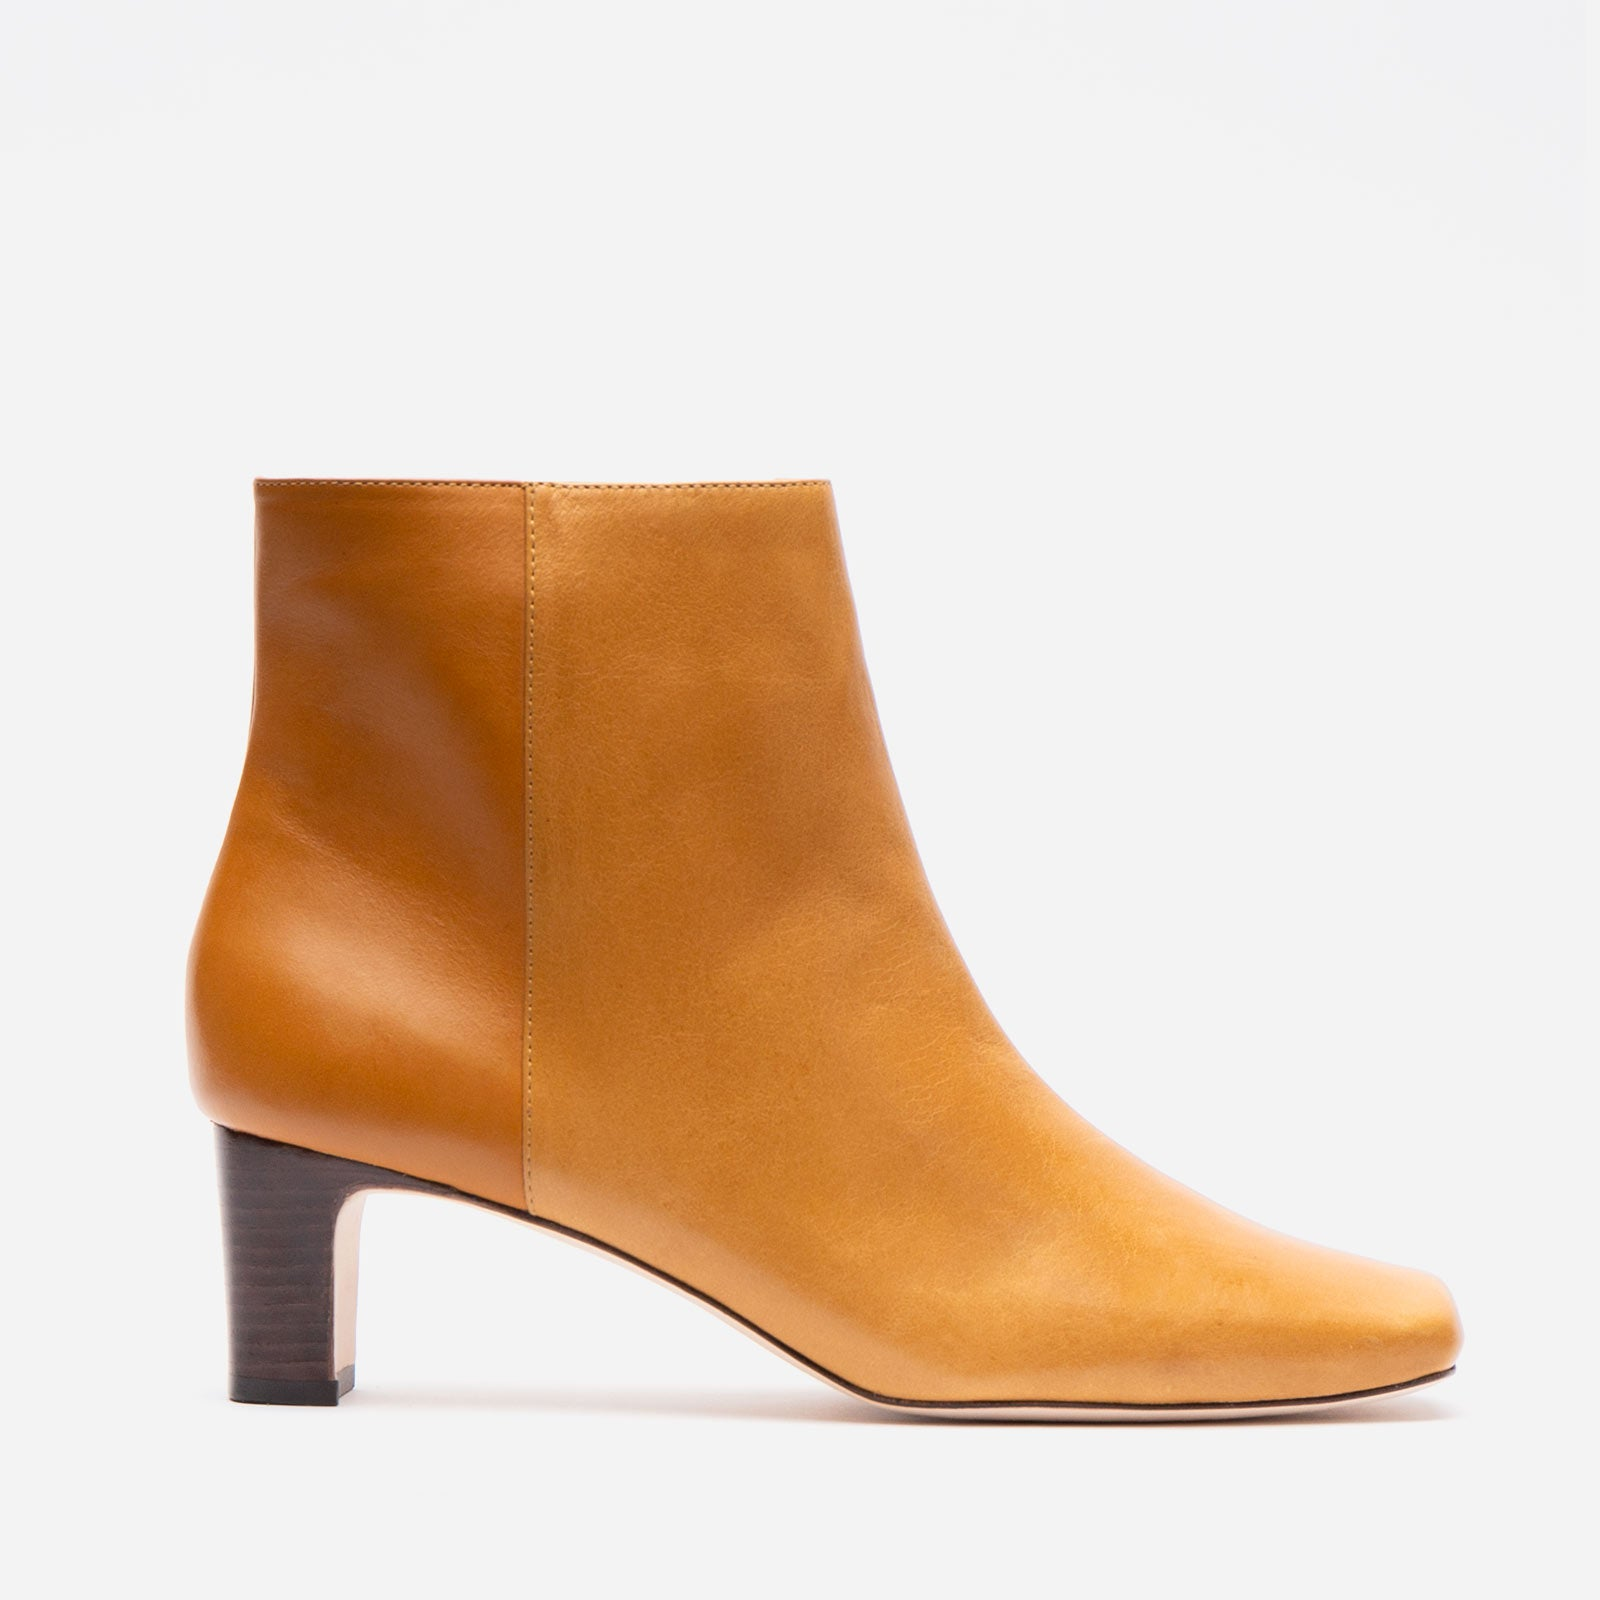 Eleanor Boot Naplak Caramel - Frances Valentine